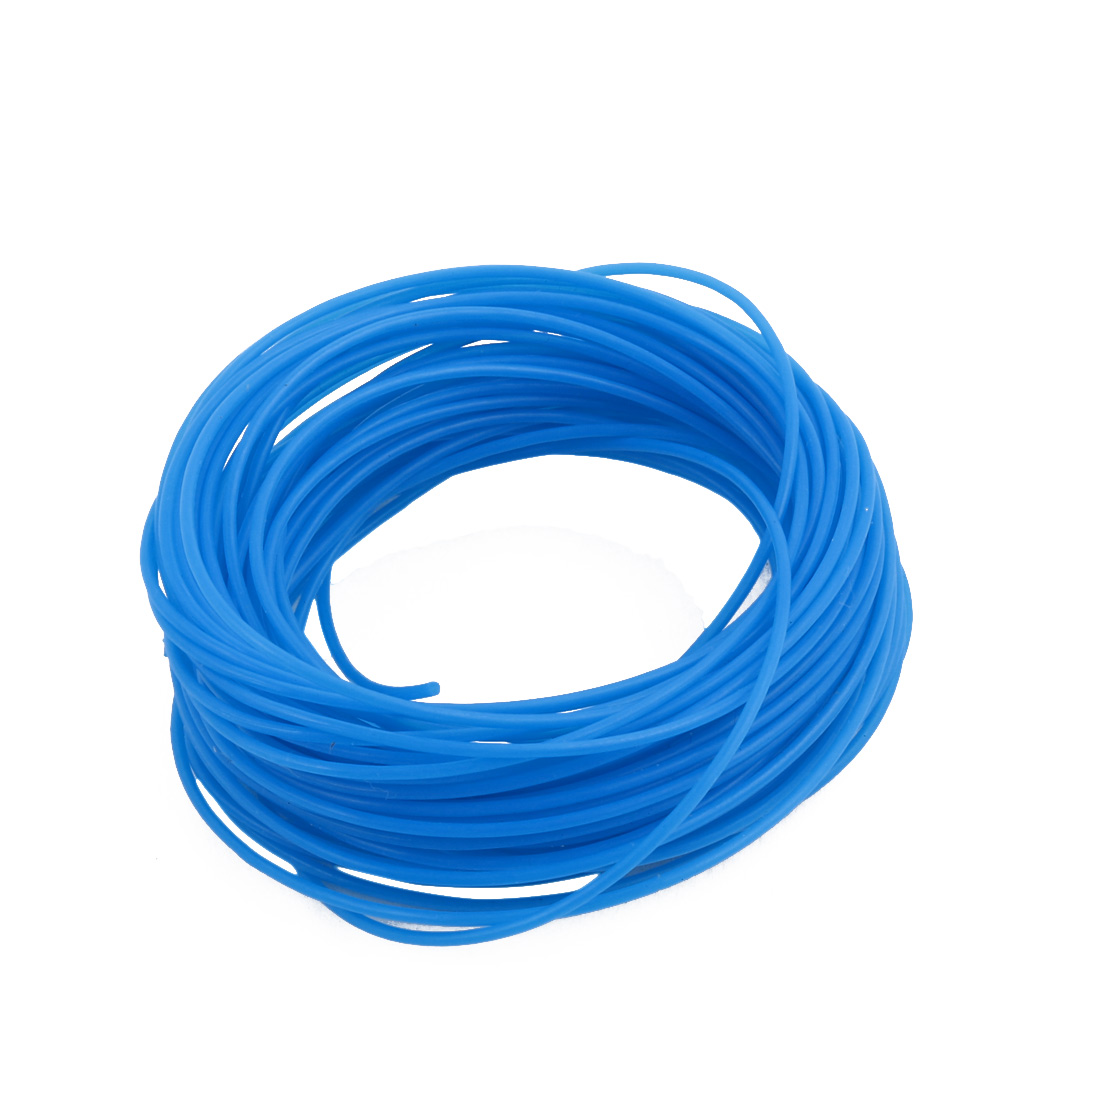 0.86mmx1.16mm PTFE Resistant High Temperature Blue Tubing 10 Meters 32.8Ft